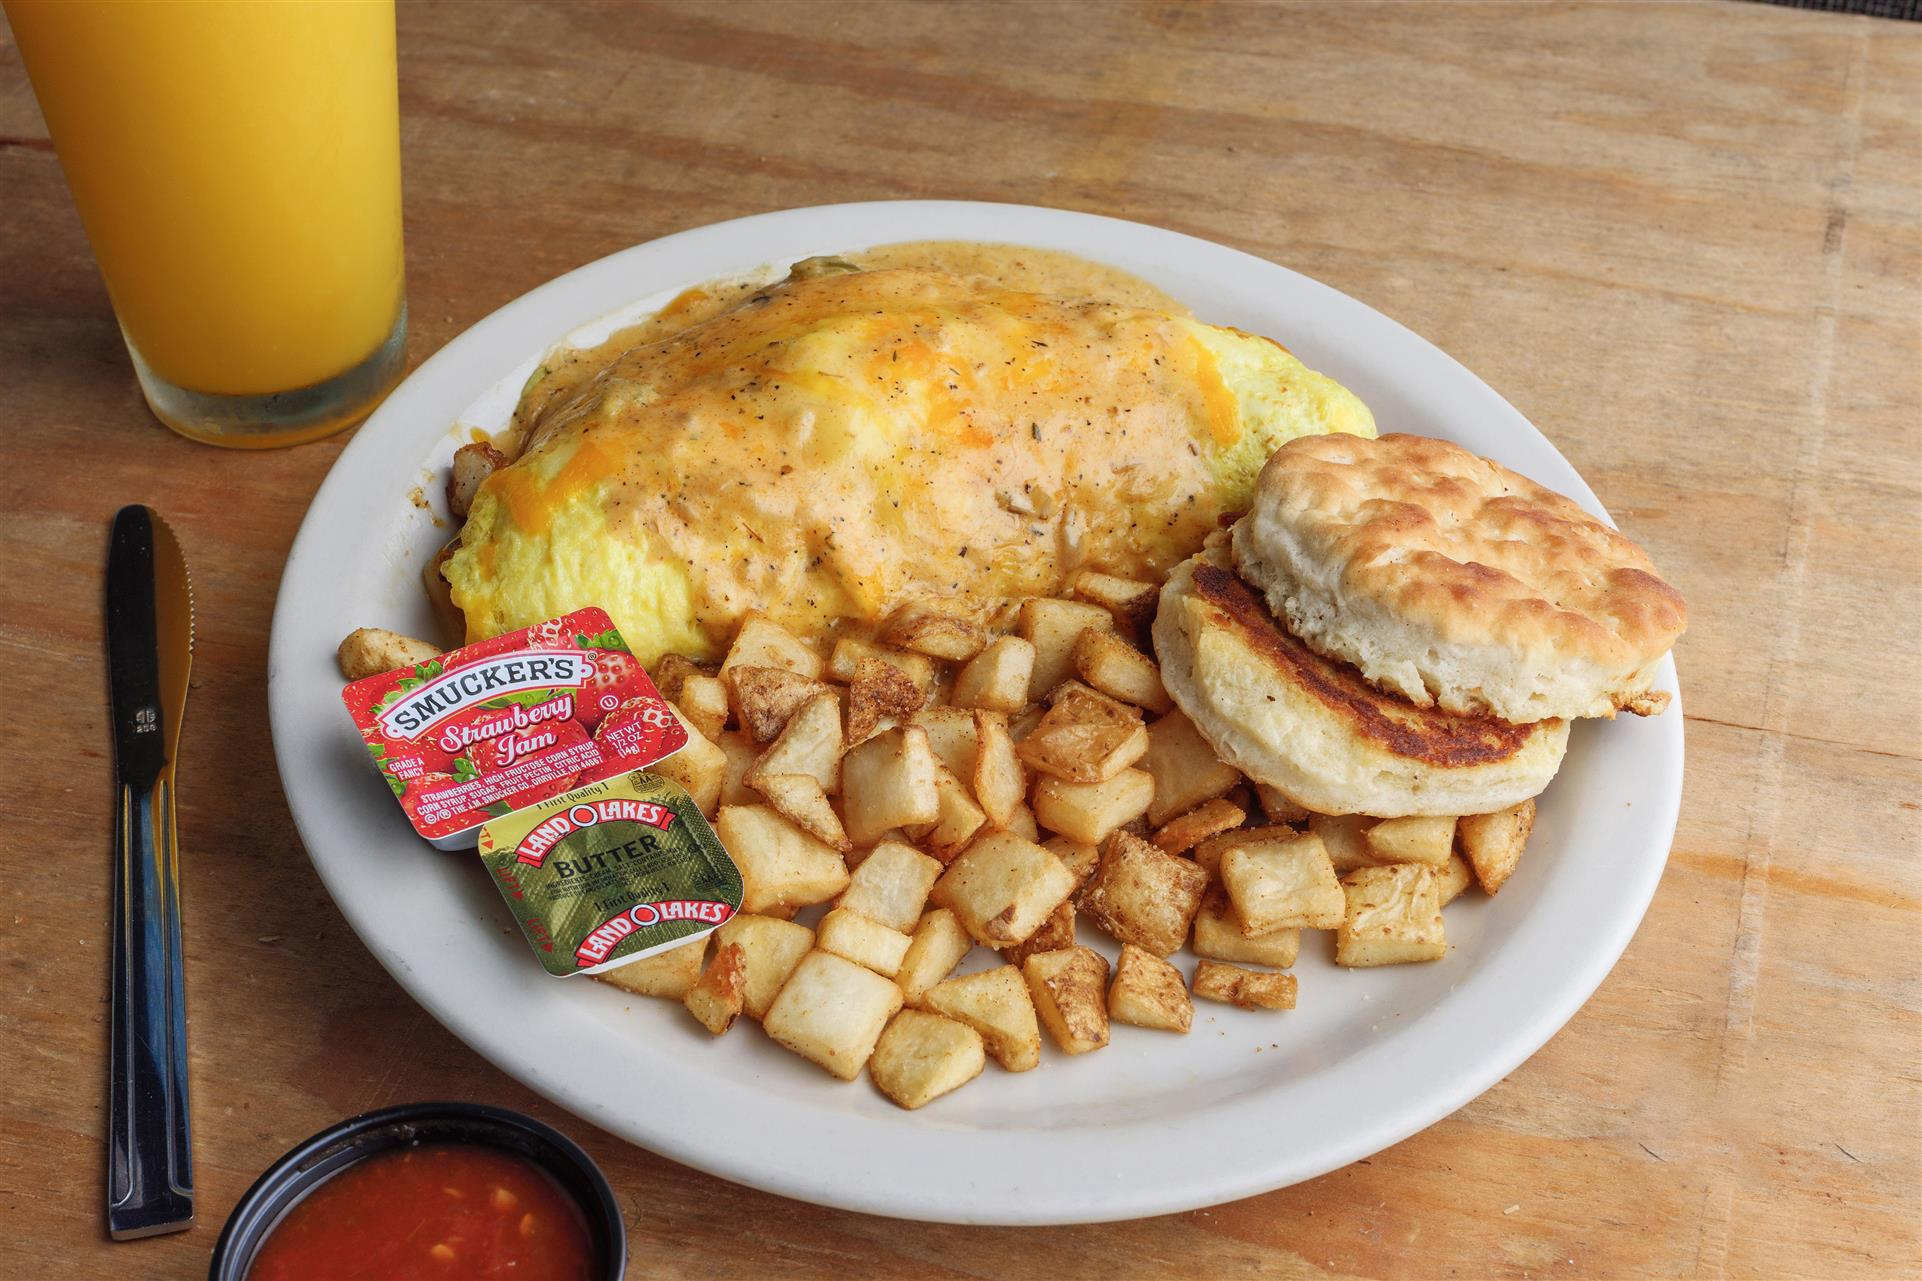 large omelette with melted cheese, side of home fries and biscuits, glass of orange juice